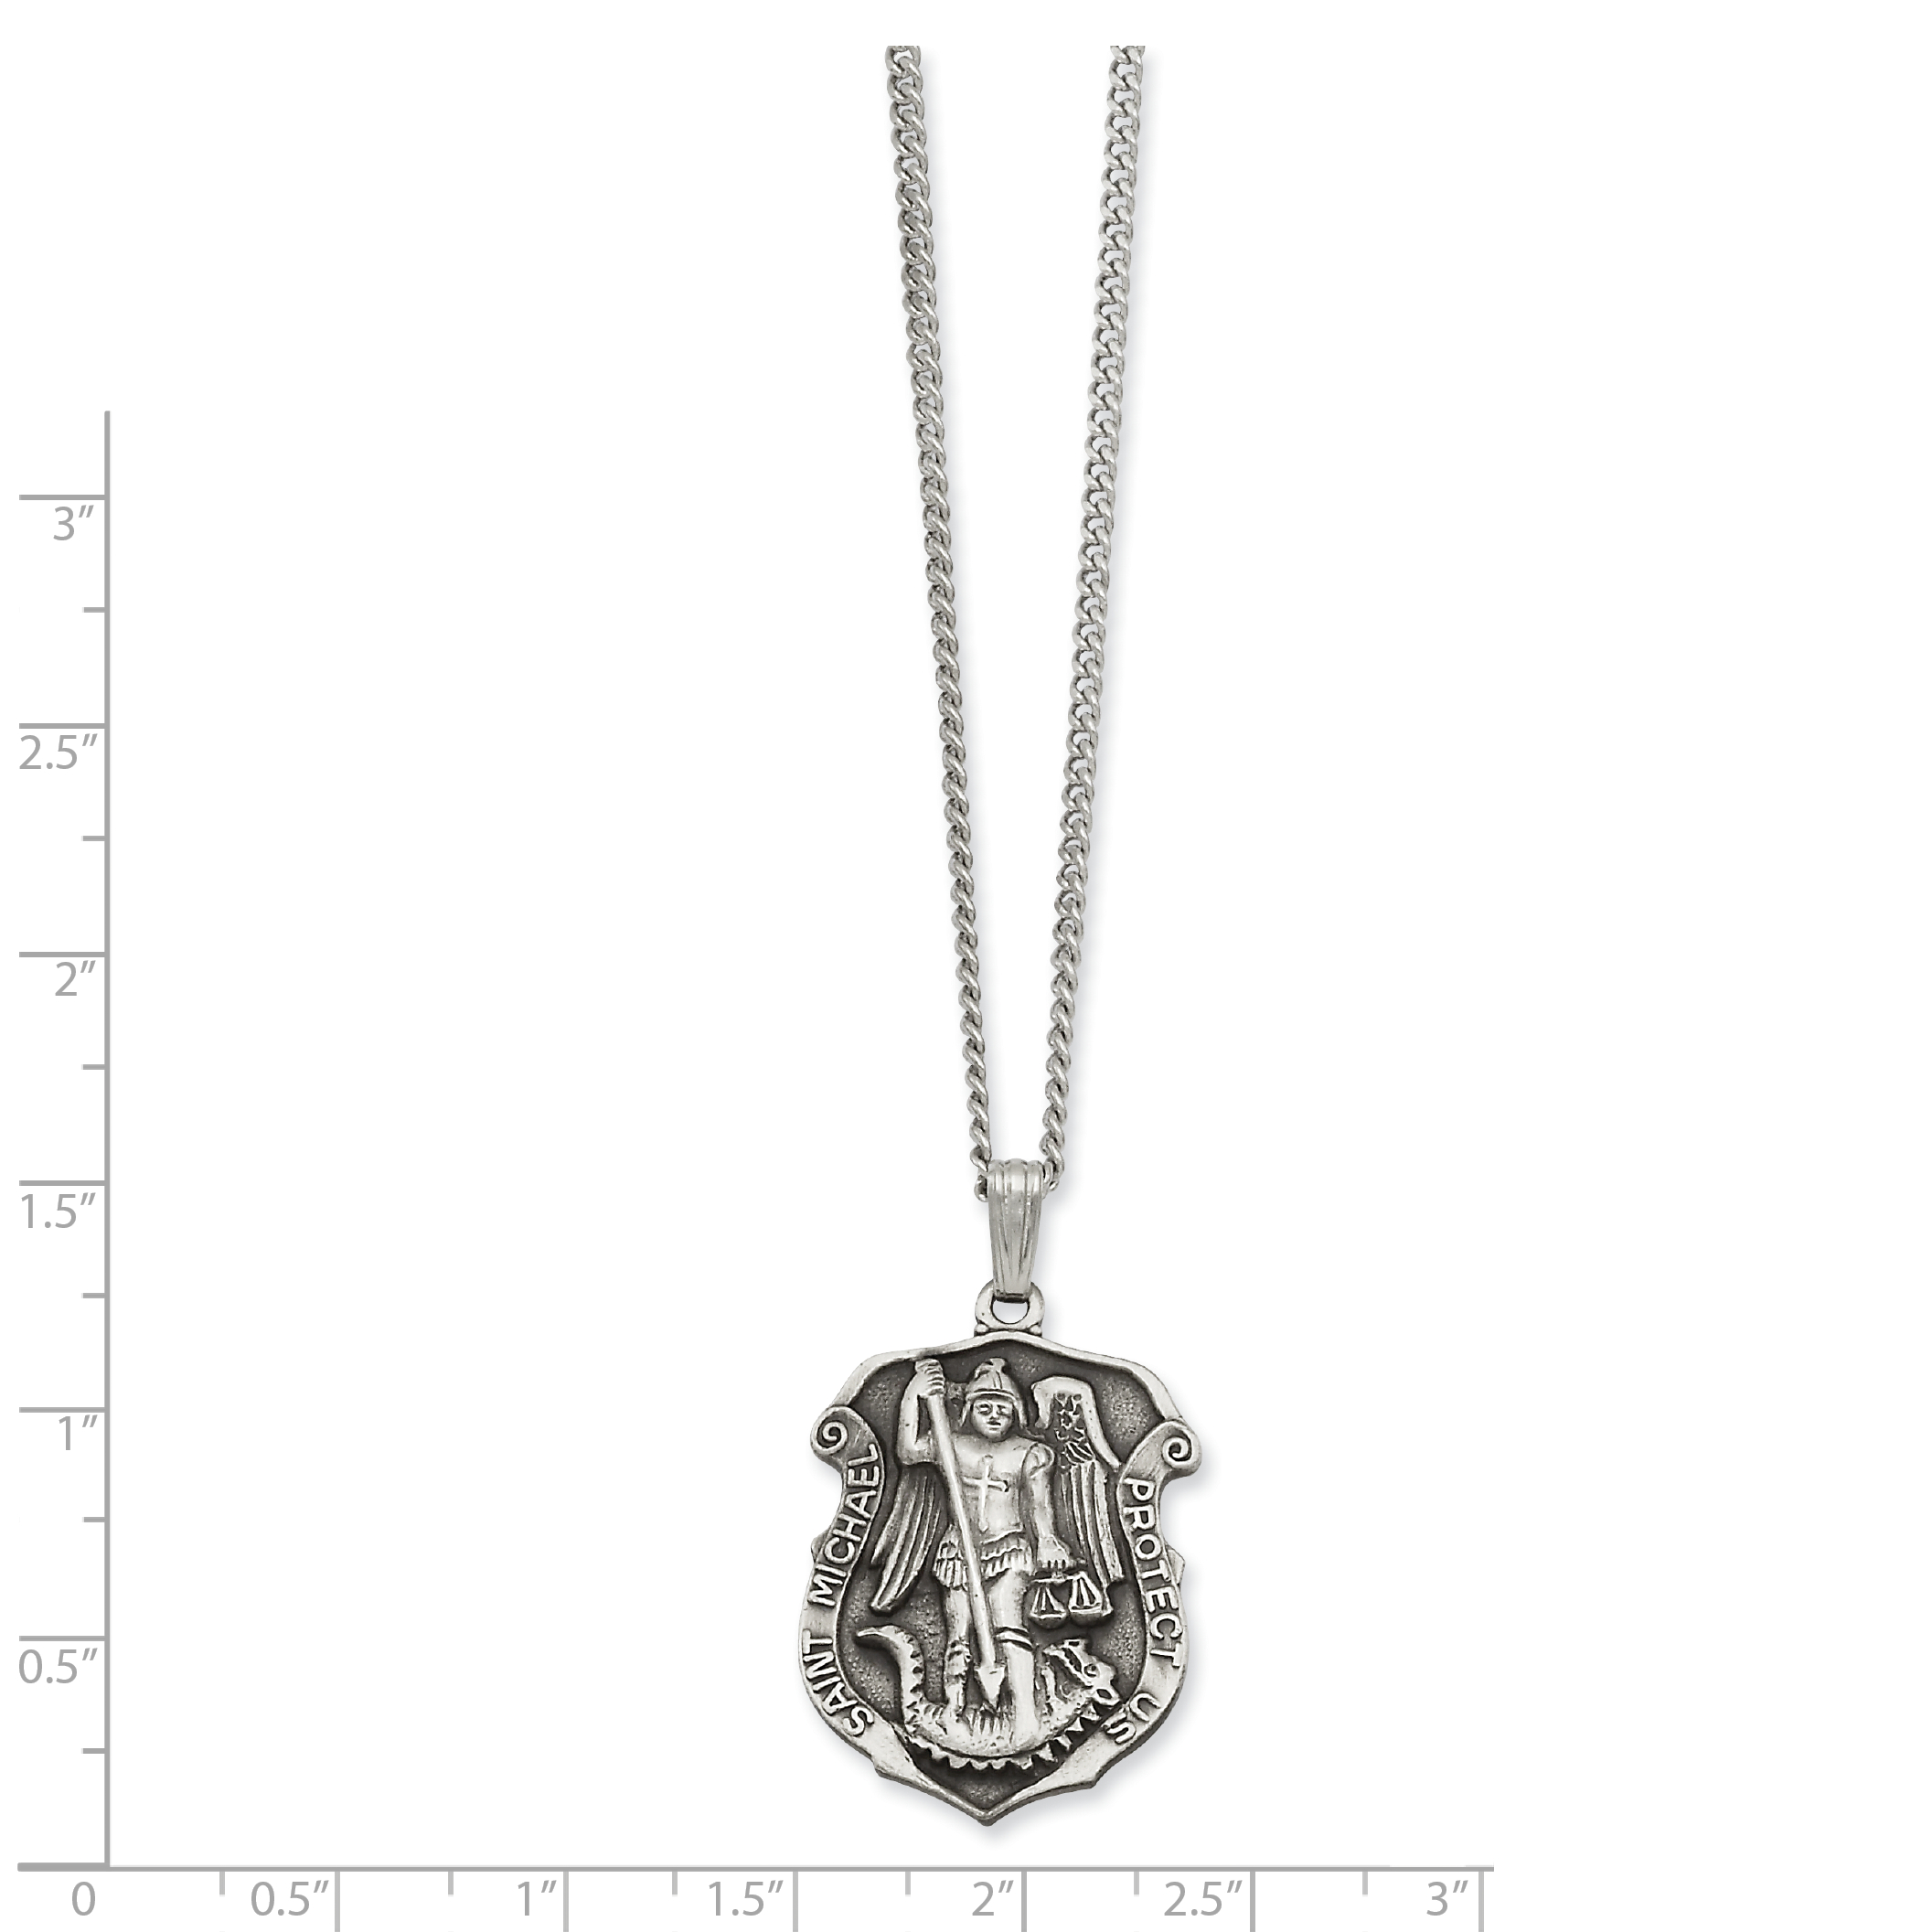 24in Kelly Waters Saint Michael Medal Chain Necklace Pendant Charm Religious Patron St Fashion Jewelry Gifts For Women For Her - image 1 de 2